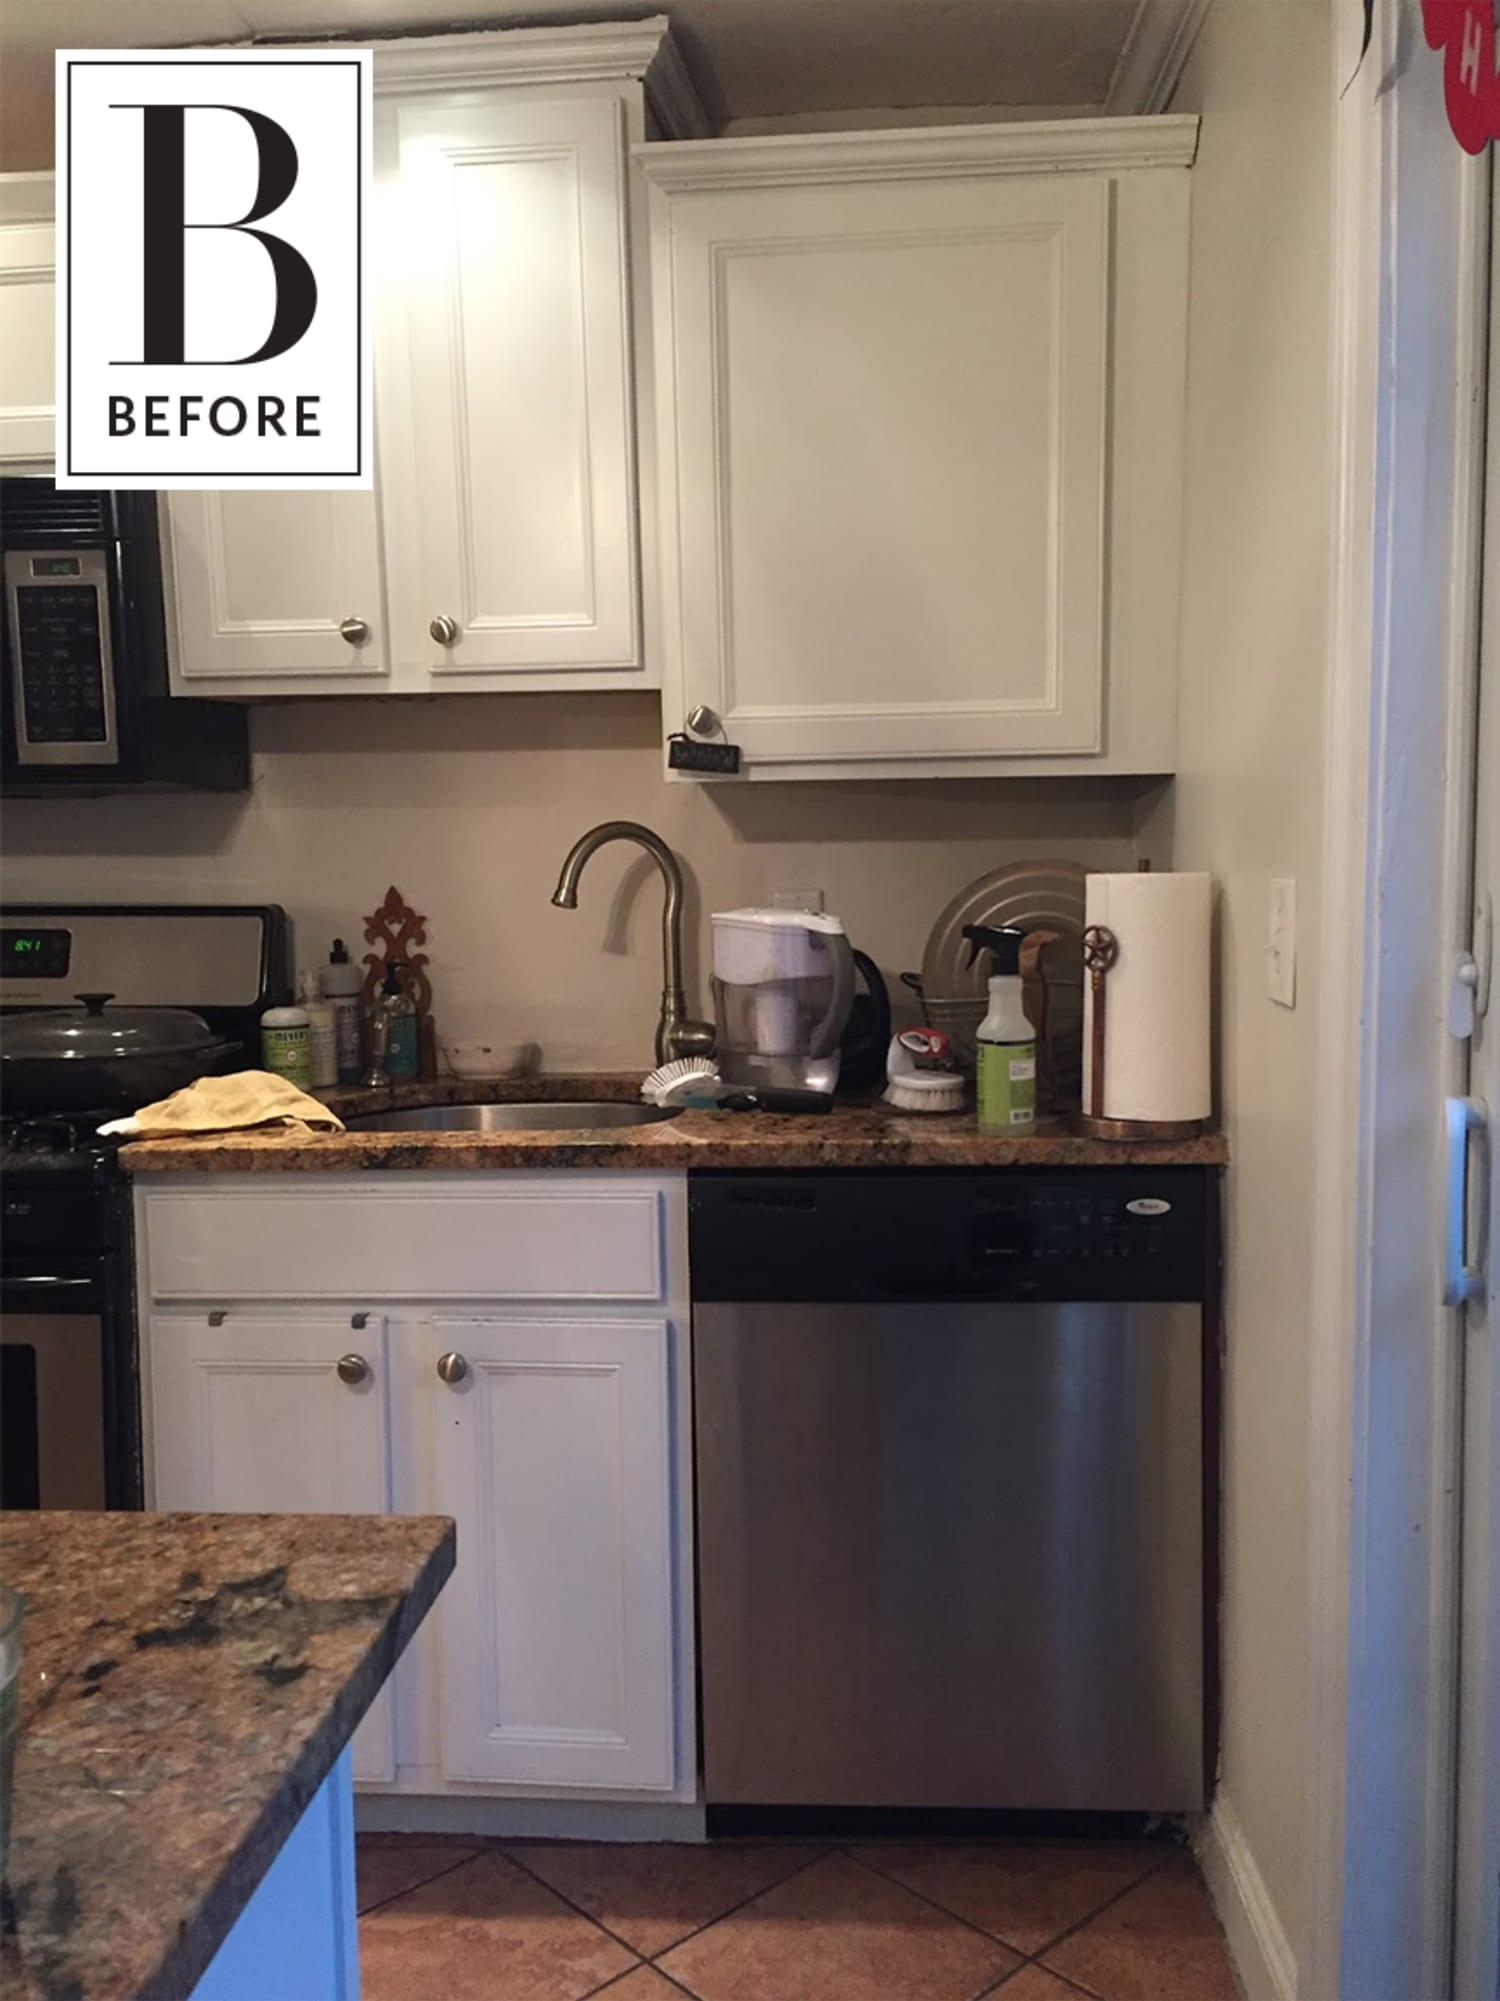 Before & After: A Cost-Effective and Stylish Kitchen Reno